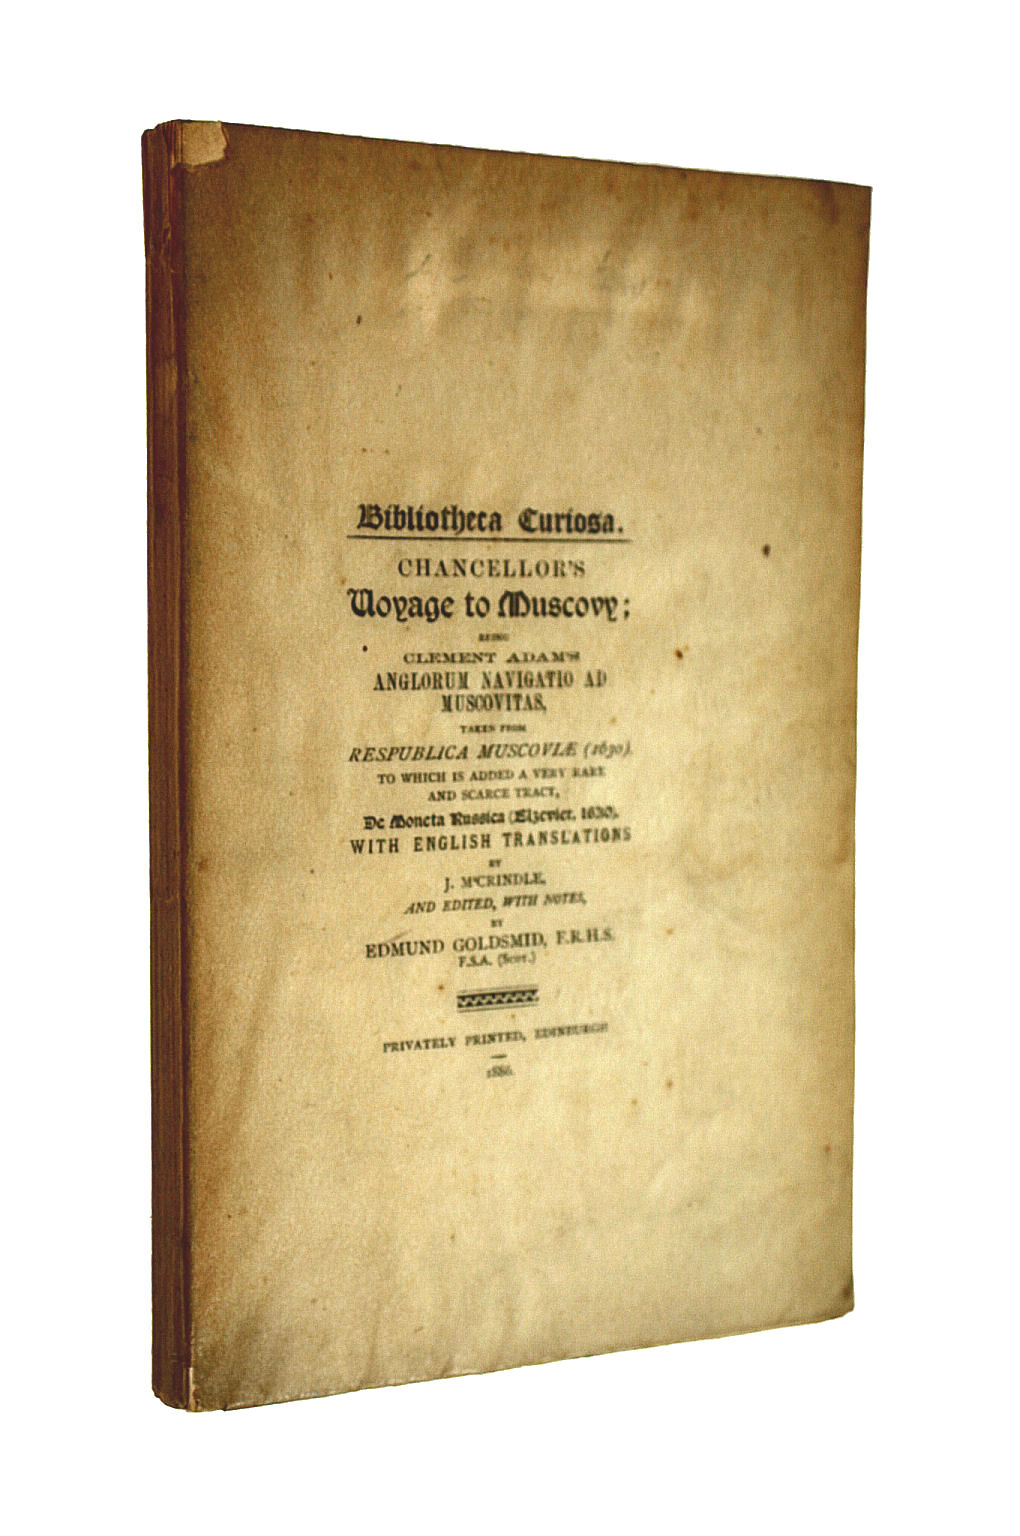 Image for Bibliotheca Curiousa. Chancellor's Voyage To Muscovy: Being Clement Adam's Anglorum Navigatio Ad Muscovitas, Taken From Respublica Muscoviae